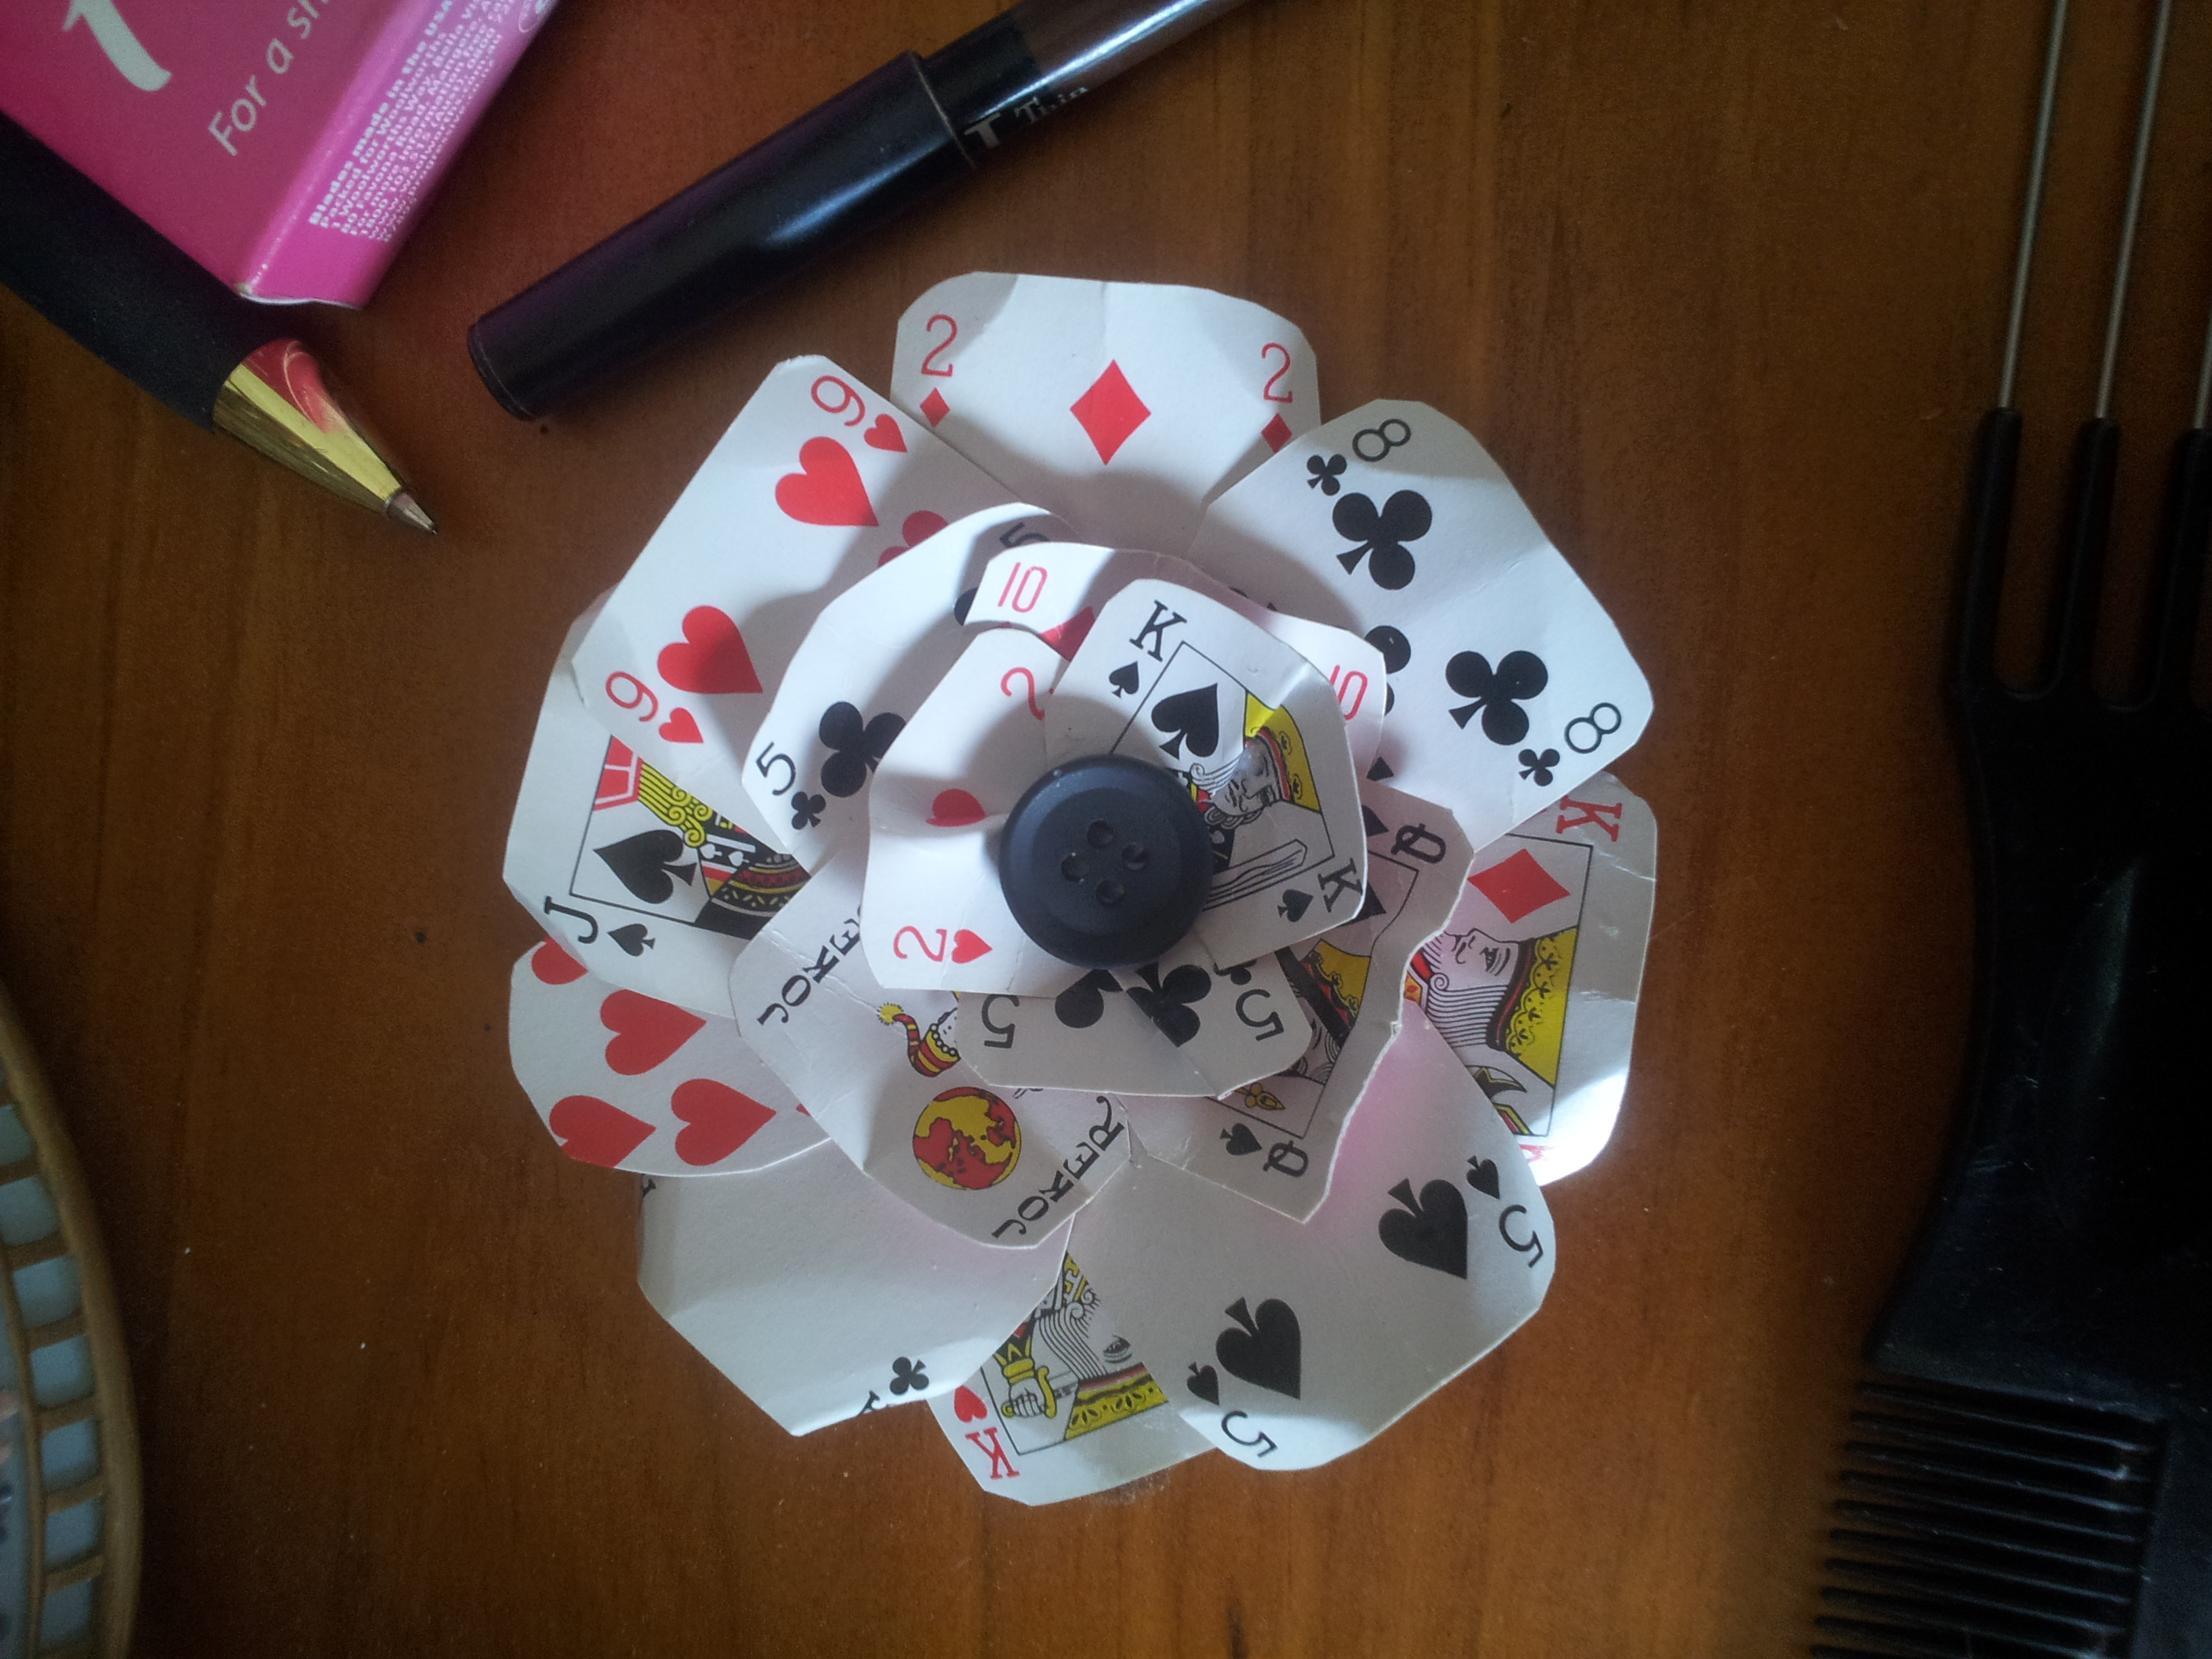 Playing Card Flower Decoration. Cowgirl Decorations. World Home Decor. Online Home Decor Sites. Halloween Cemetery Decorations